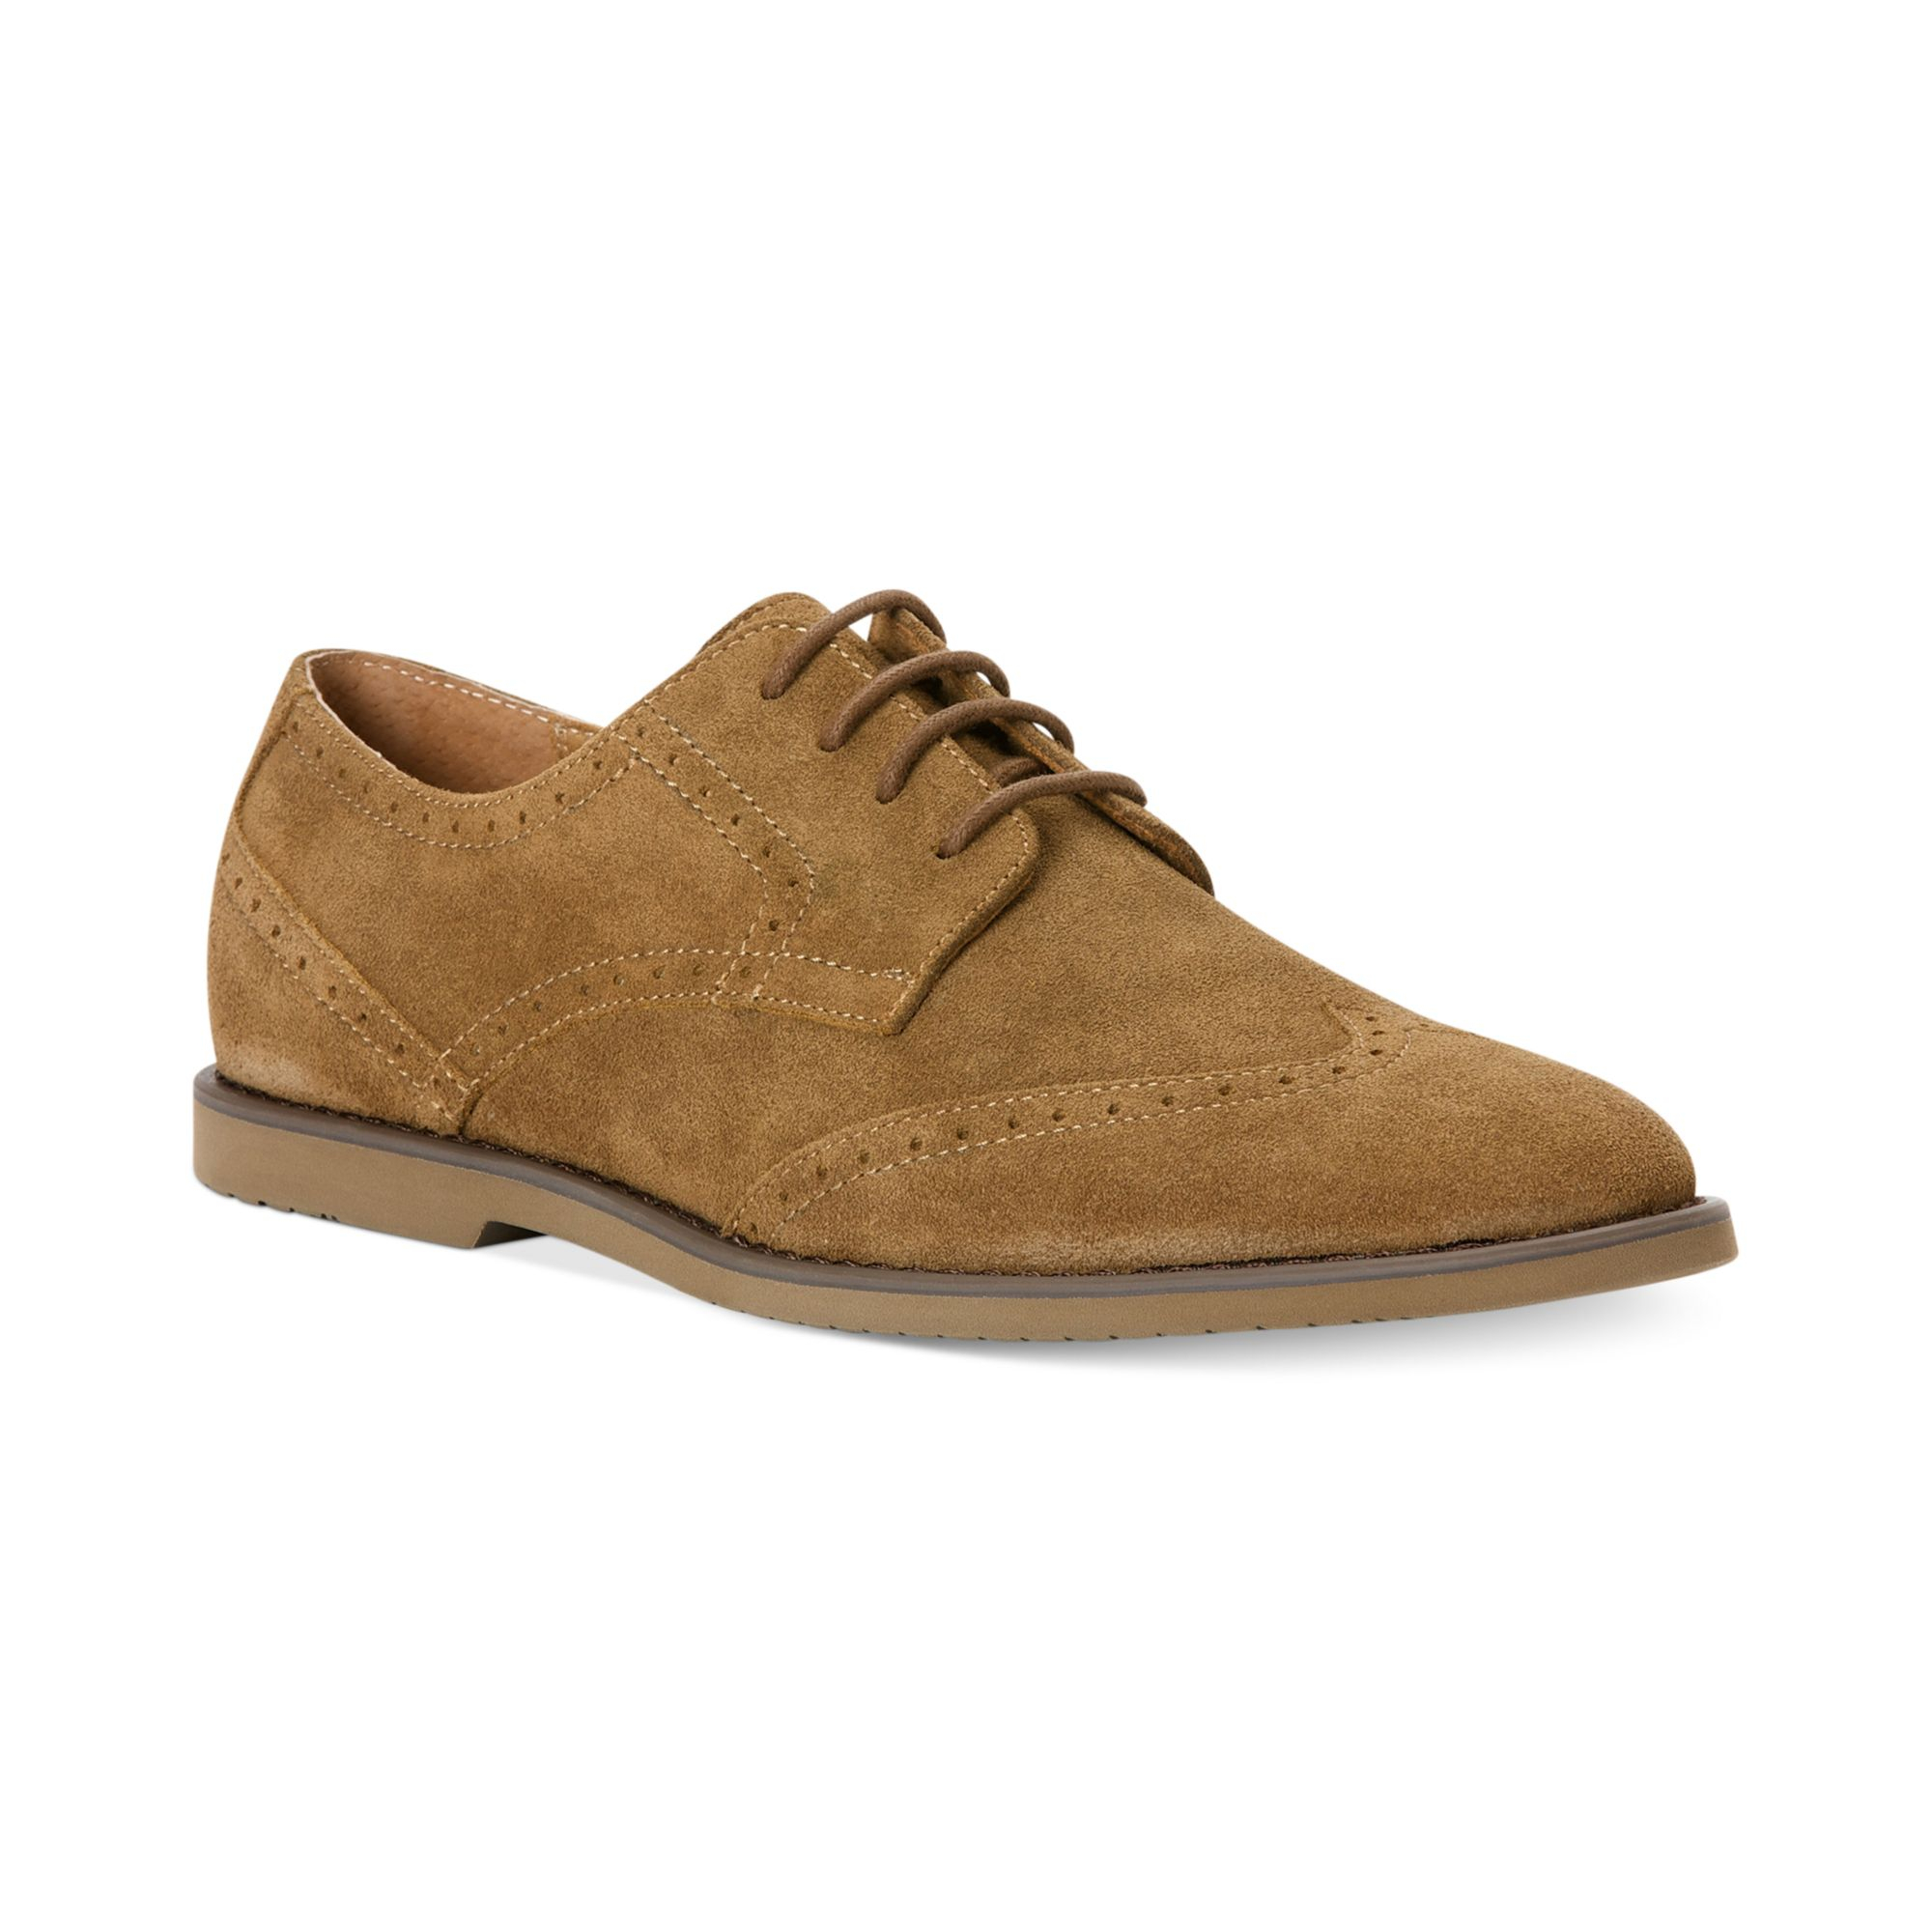 Find mens suede oxfords at ShopStyle. Shop the latest collection of mens suede oxfords from the most popular stores - all in one place.